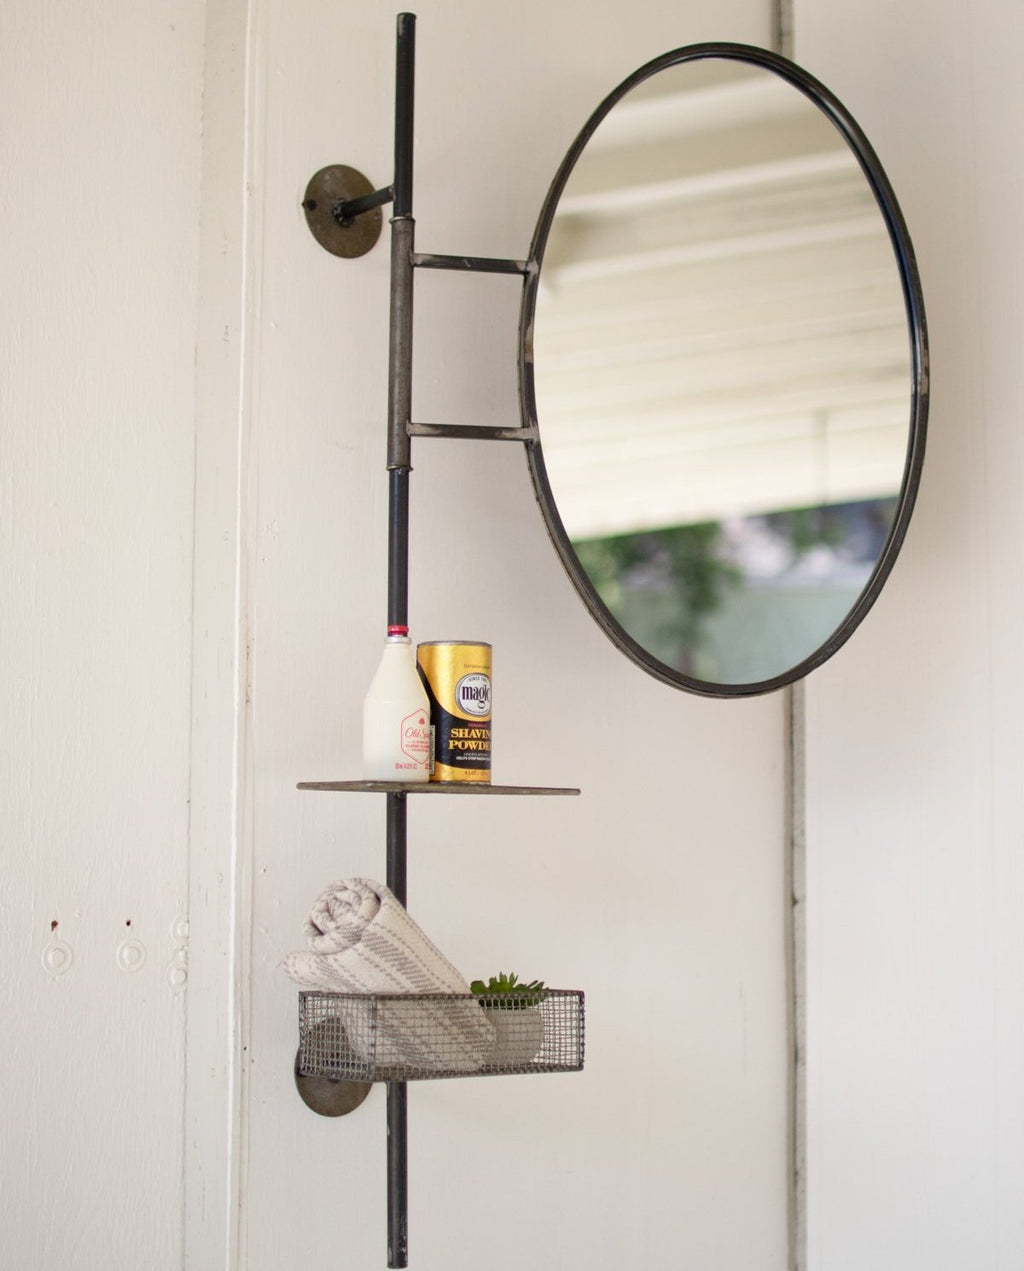 Adjustable Round Mirror with Basket and Shelf